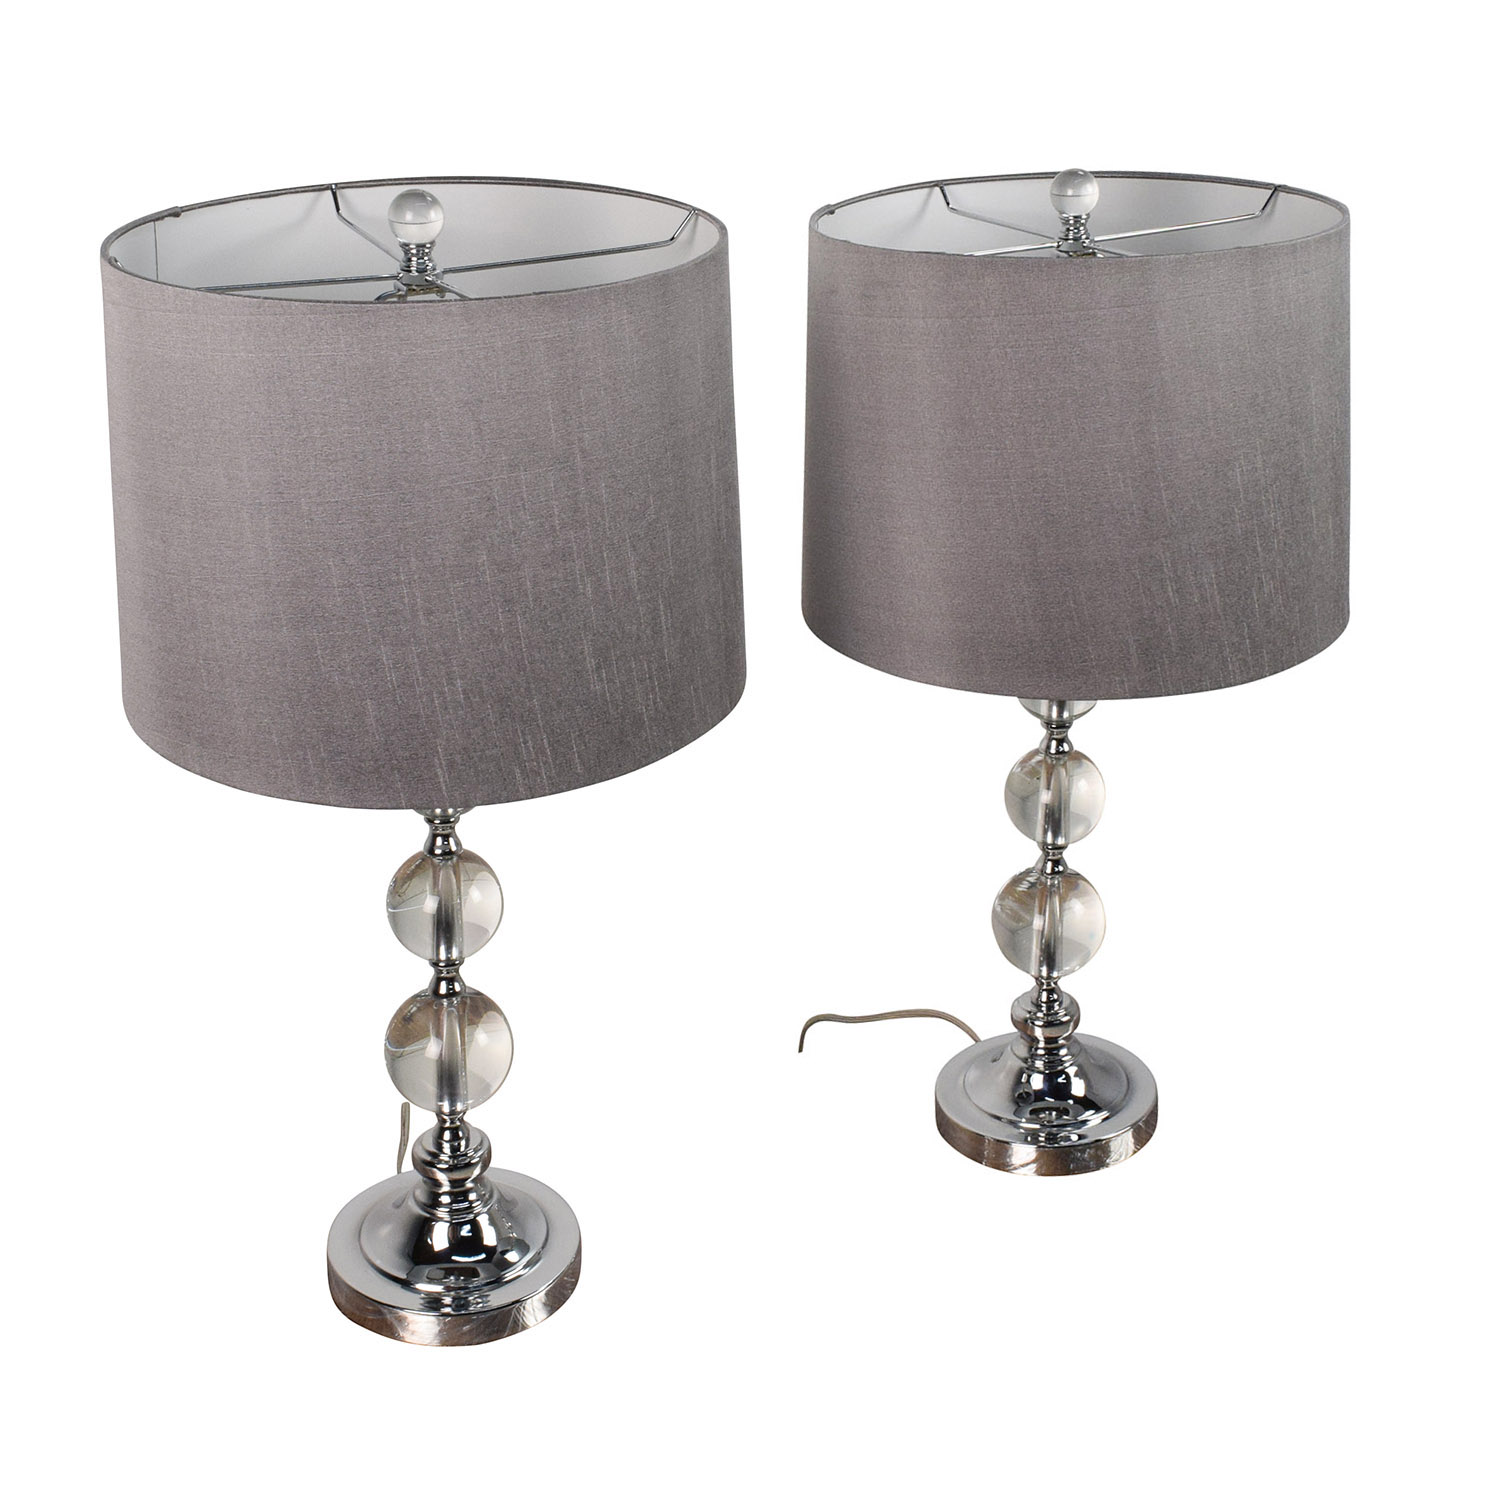 Pair of Glass Ball Base Table Lamps with Gray Shades